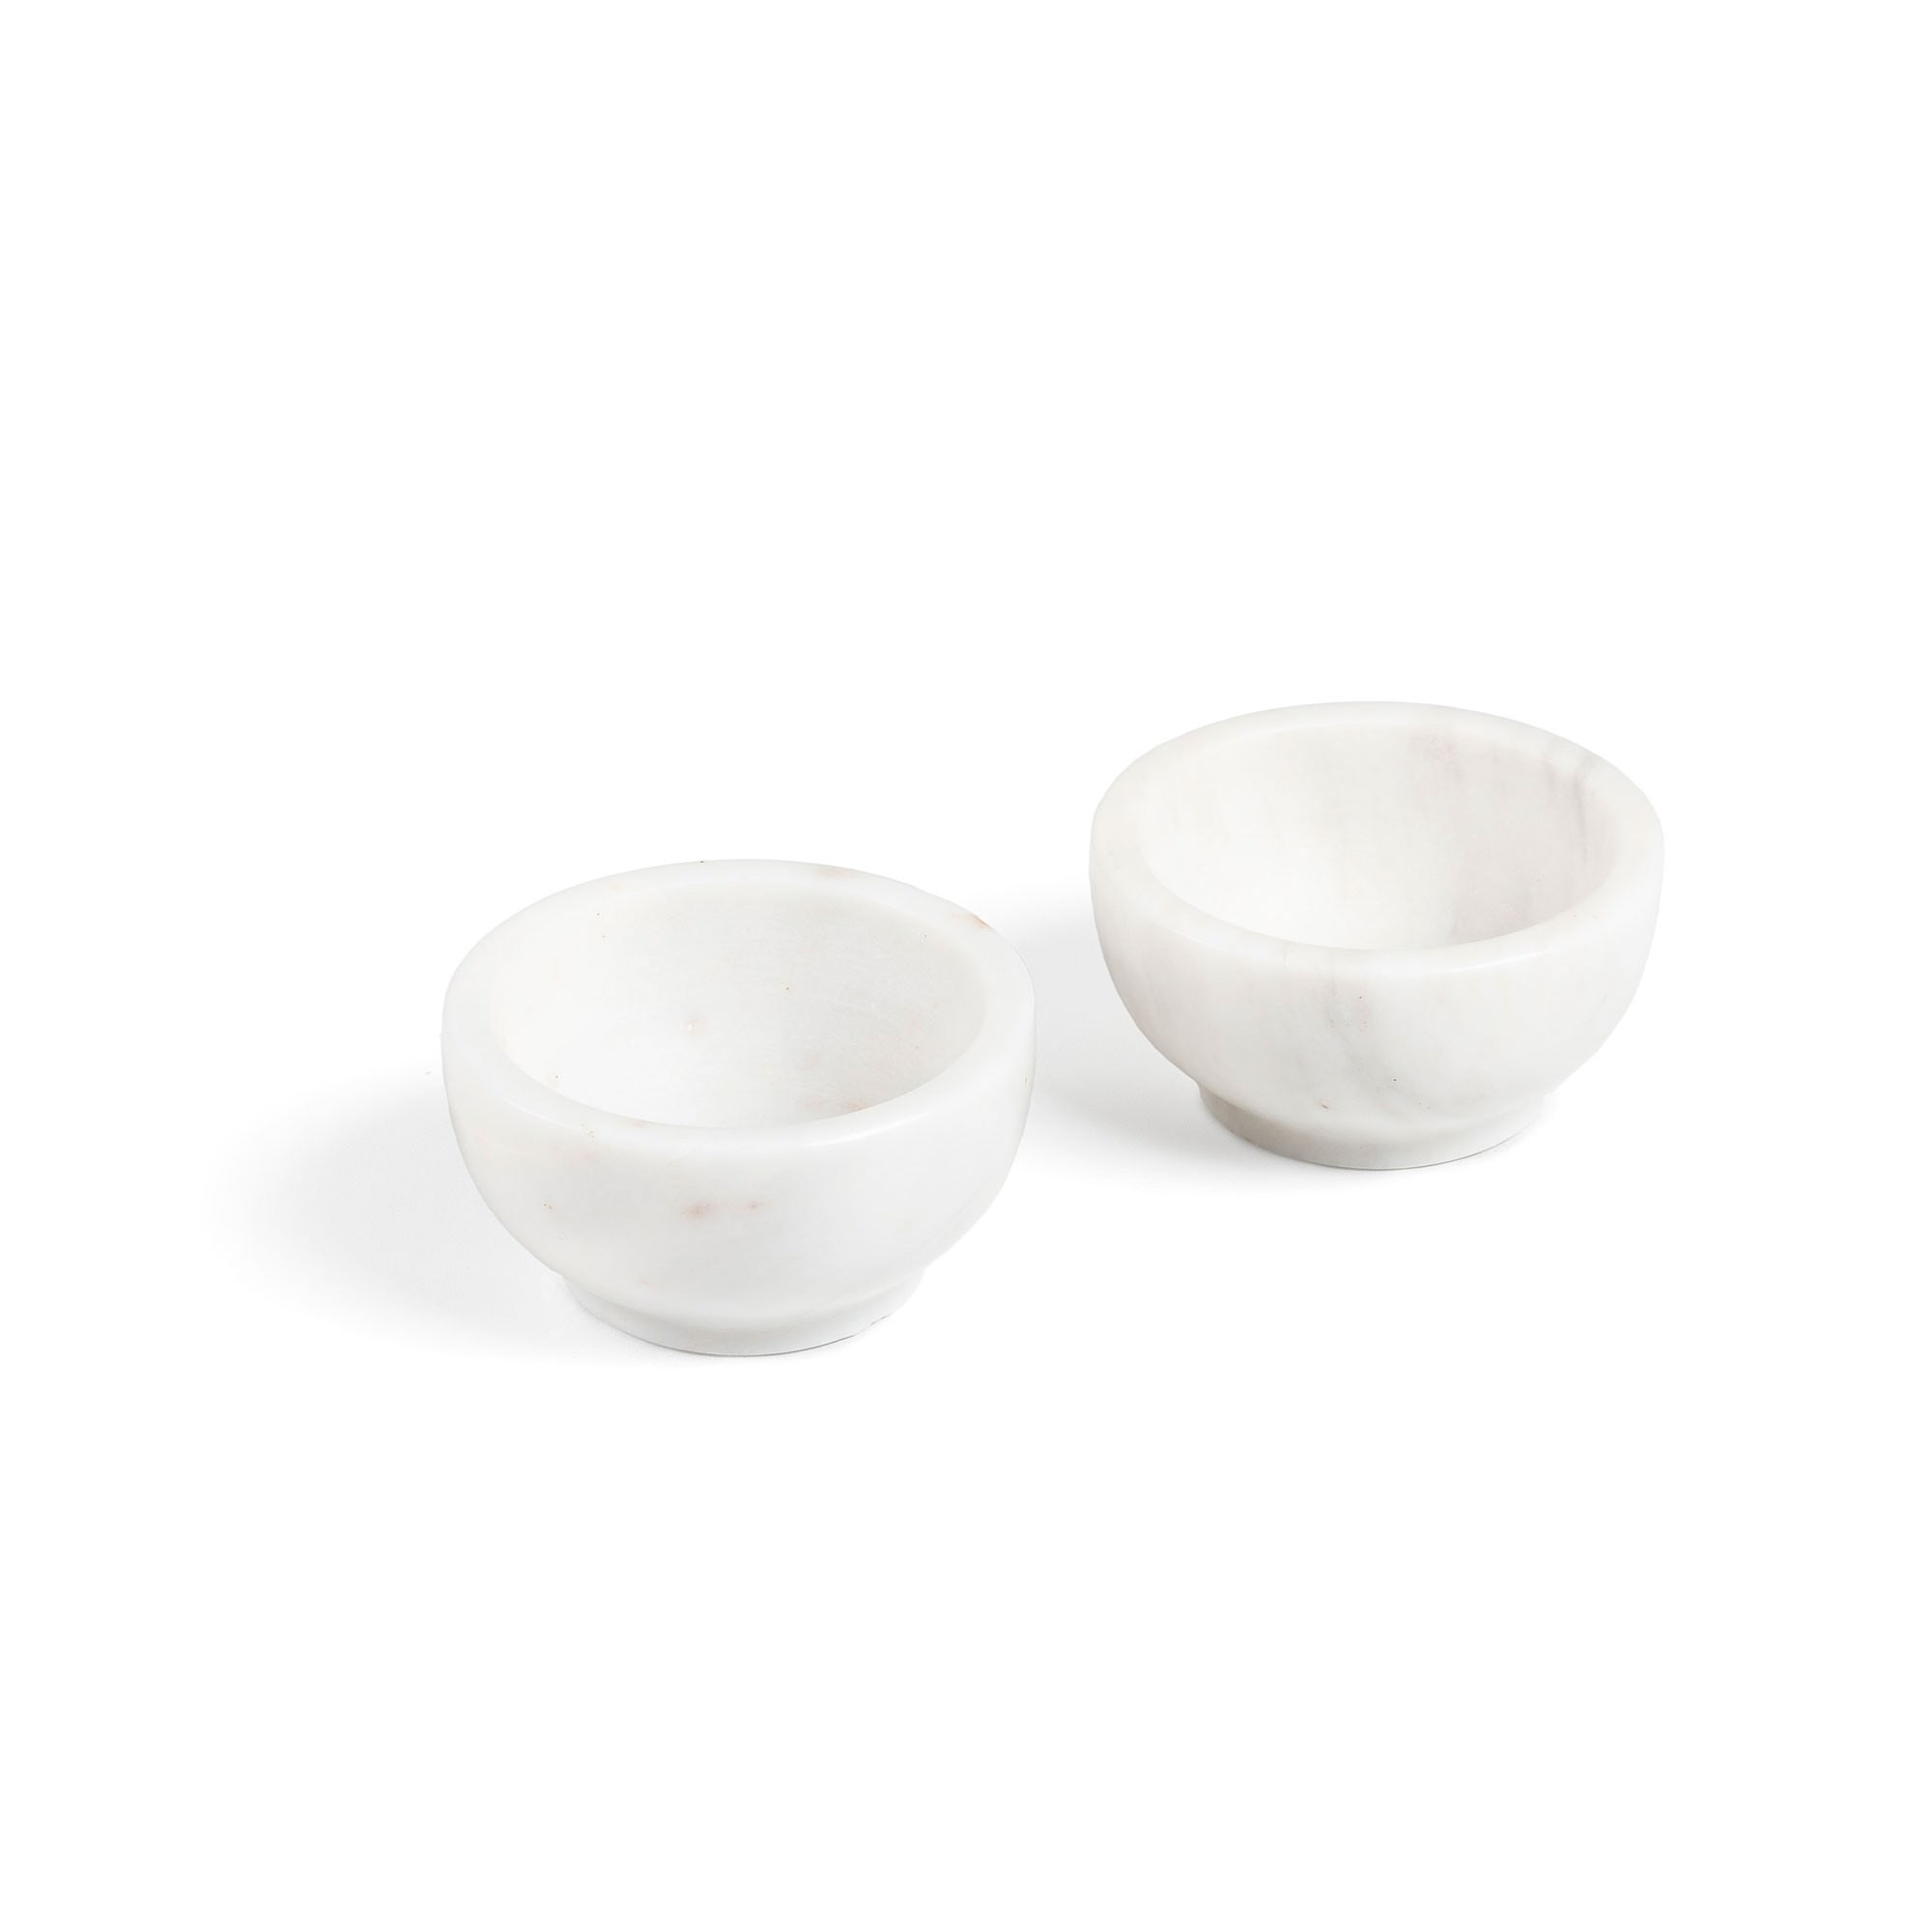 Rossmore Marble Condiment Bowl, Set of 2, White